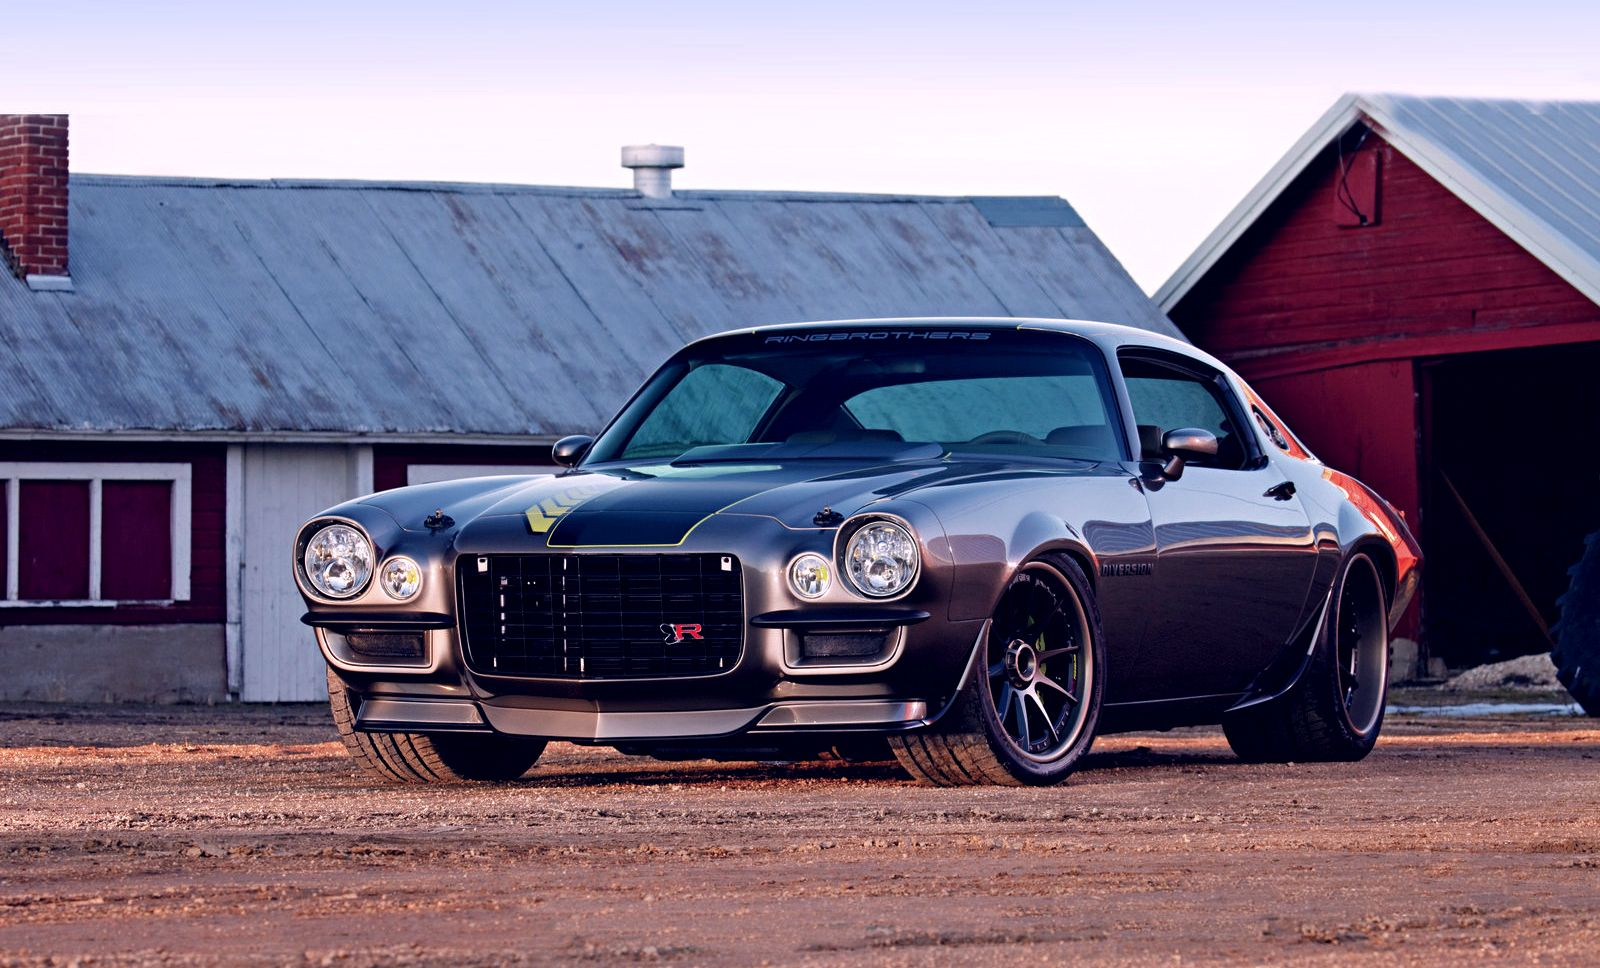 Vehicles - Camaro  - Chevy - Chevrolet - Hot Rod - Muscle Car - Classic Car Wallpaper